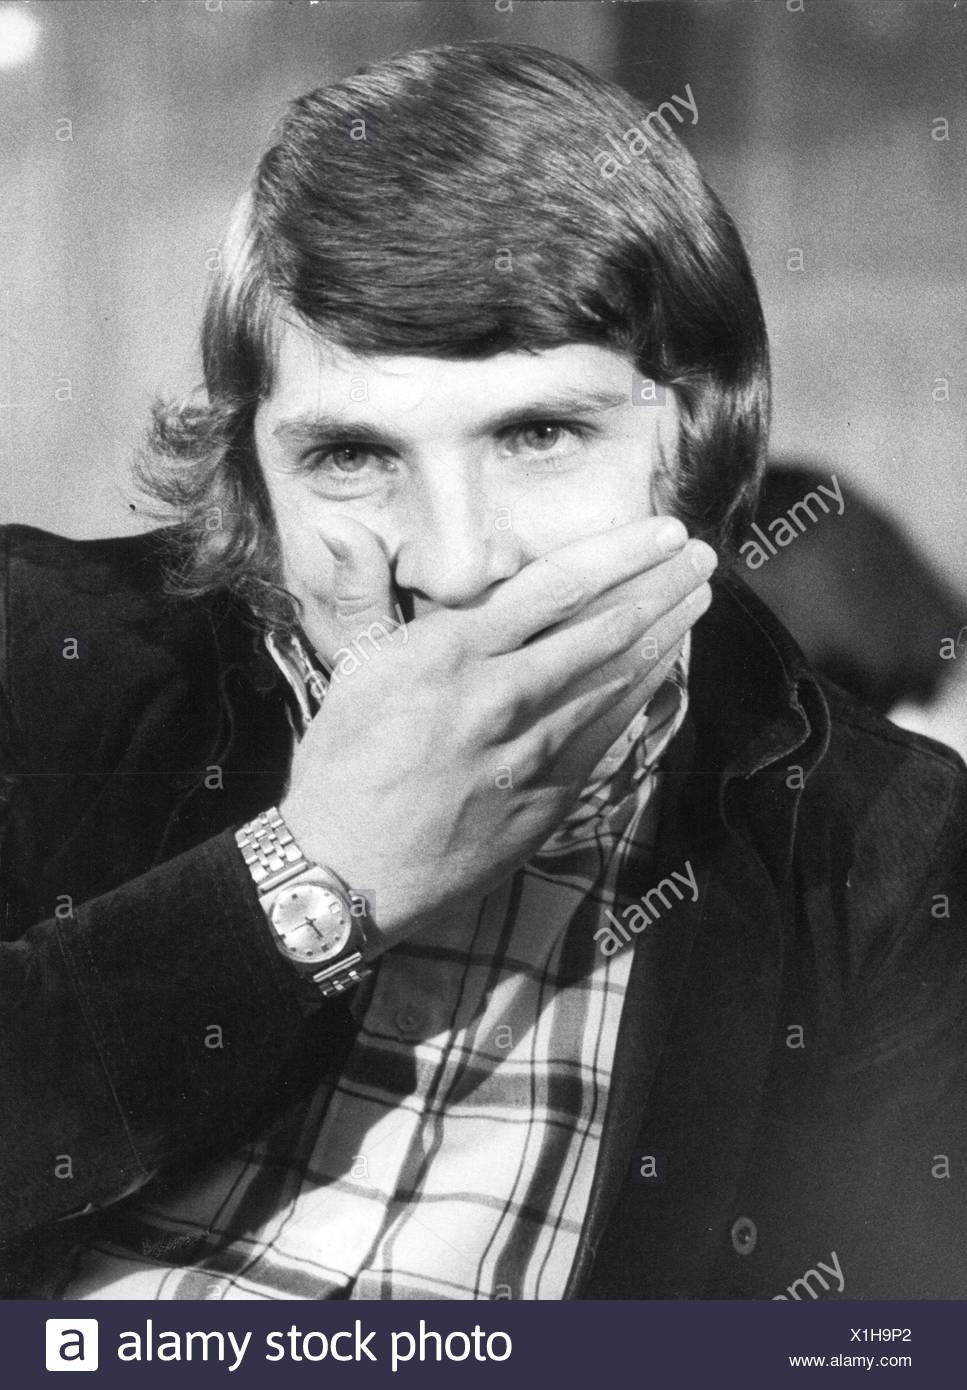 Fischer, Klaus, * 27.12.1949, German football player, striker for FC Schalke 04, before the sports court of the German Football Association, after the proclamation of the sentence, inhibition for two years, 4.11.1972, Additional-Rights-Clearances-NA Stock Photo